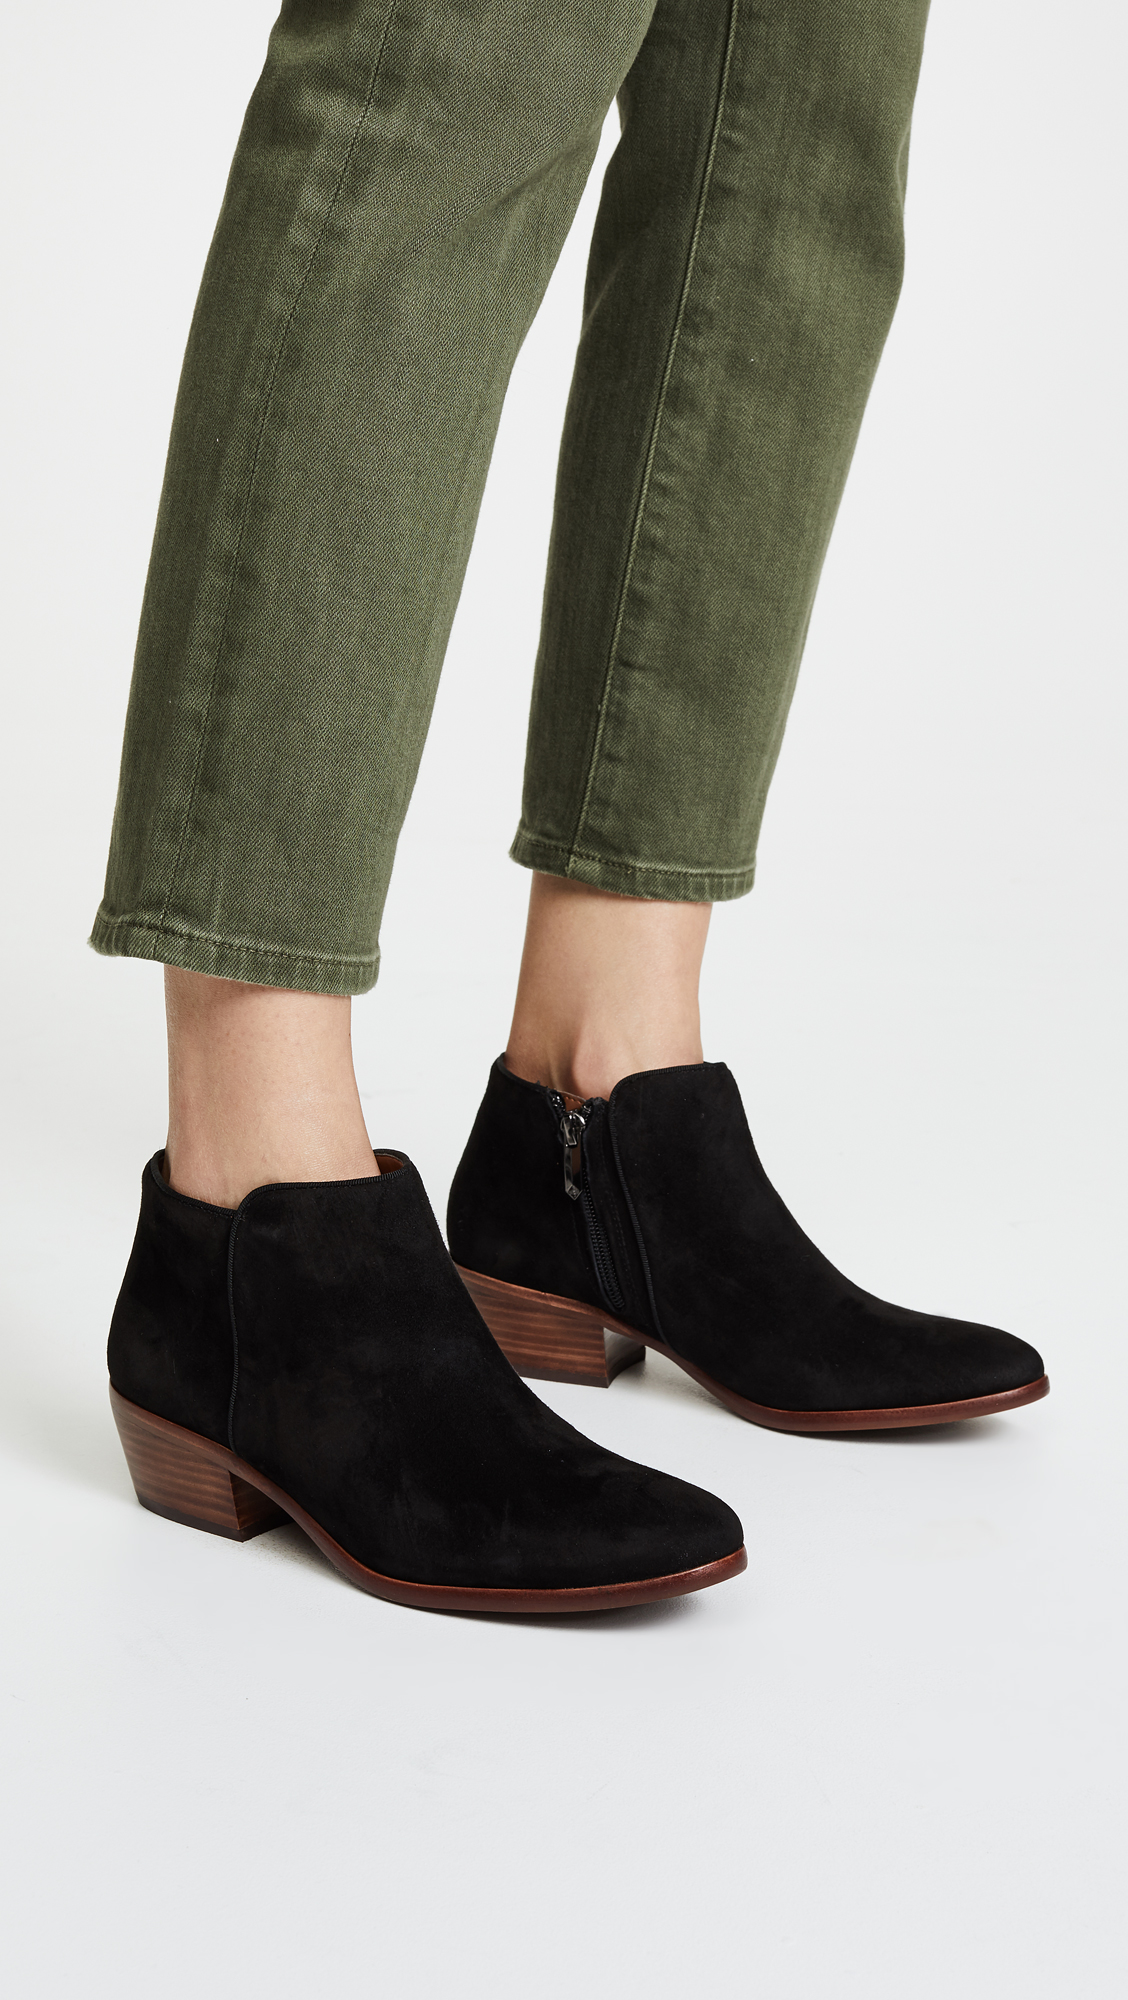 96505070b Sam Edelman Petty Suede Booties